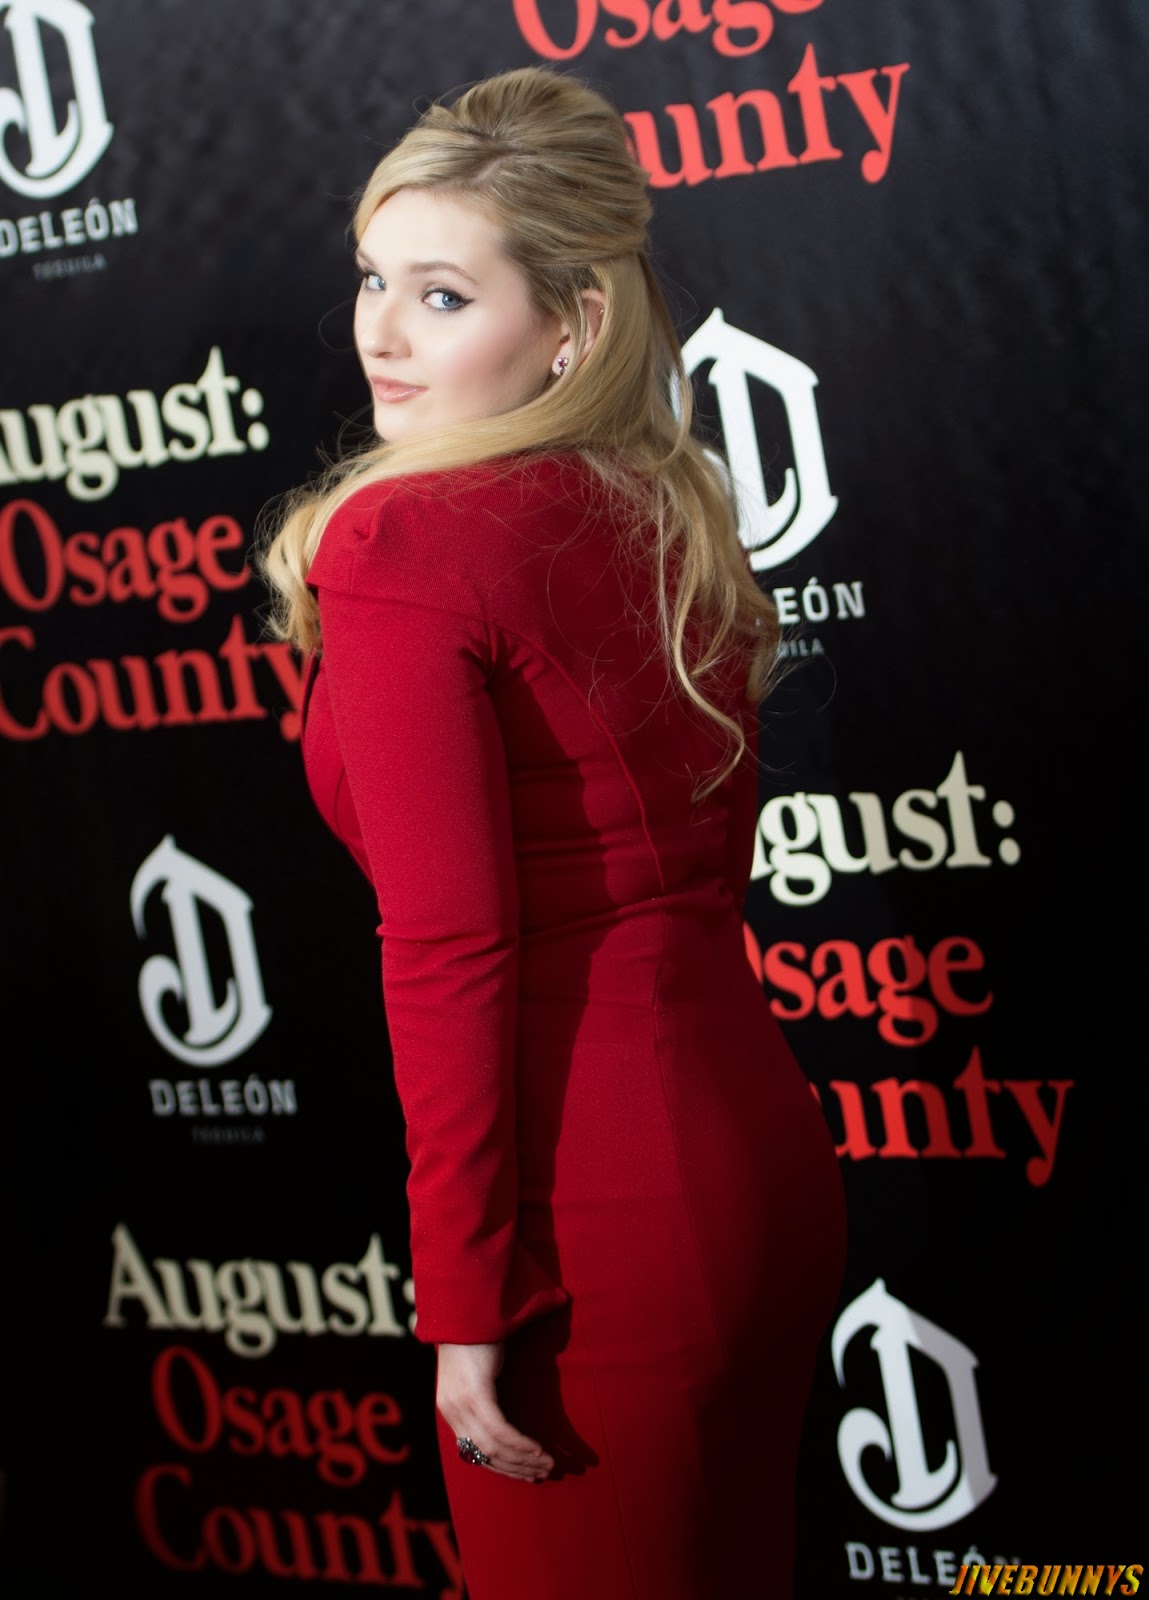 Red hot Abigail breslin attend August Osage County Premieres in NYC